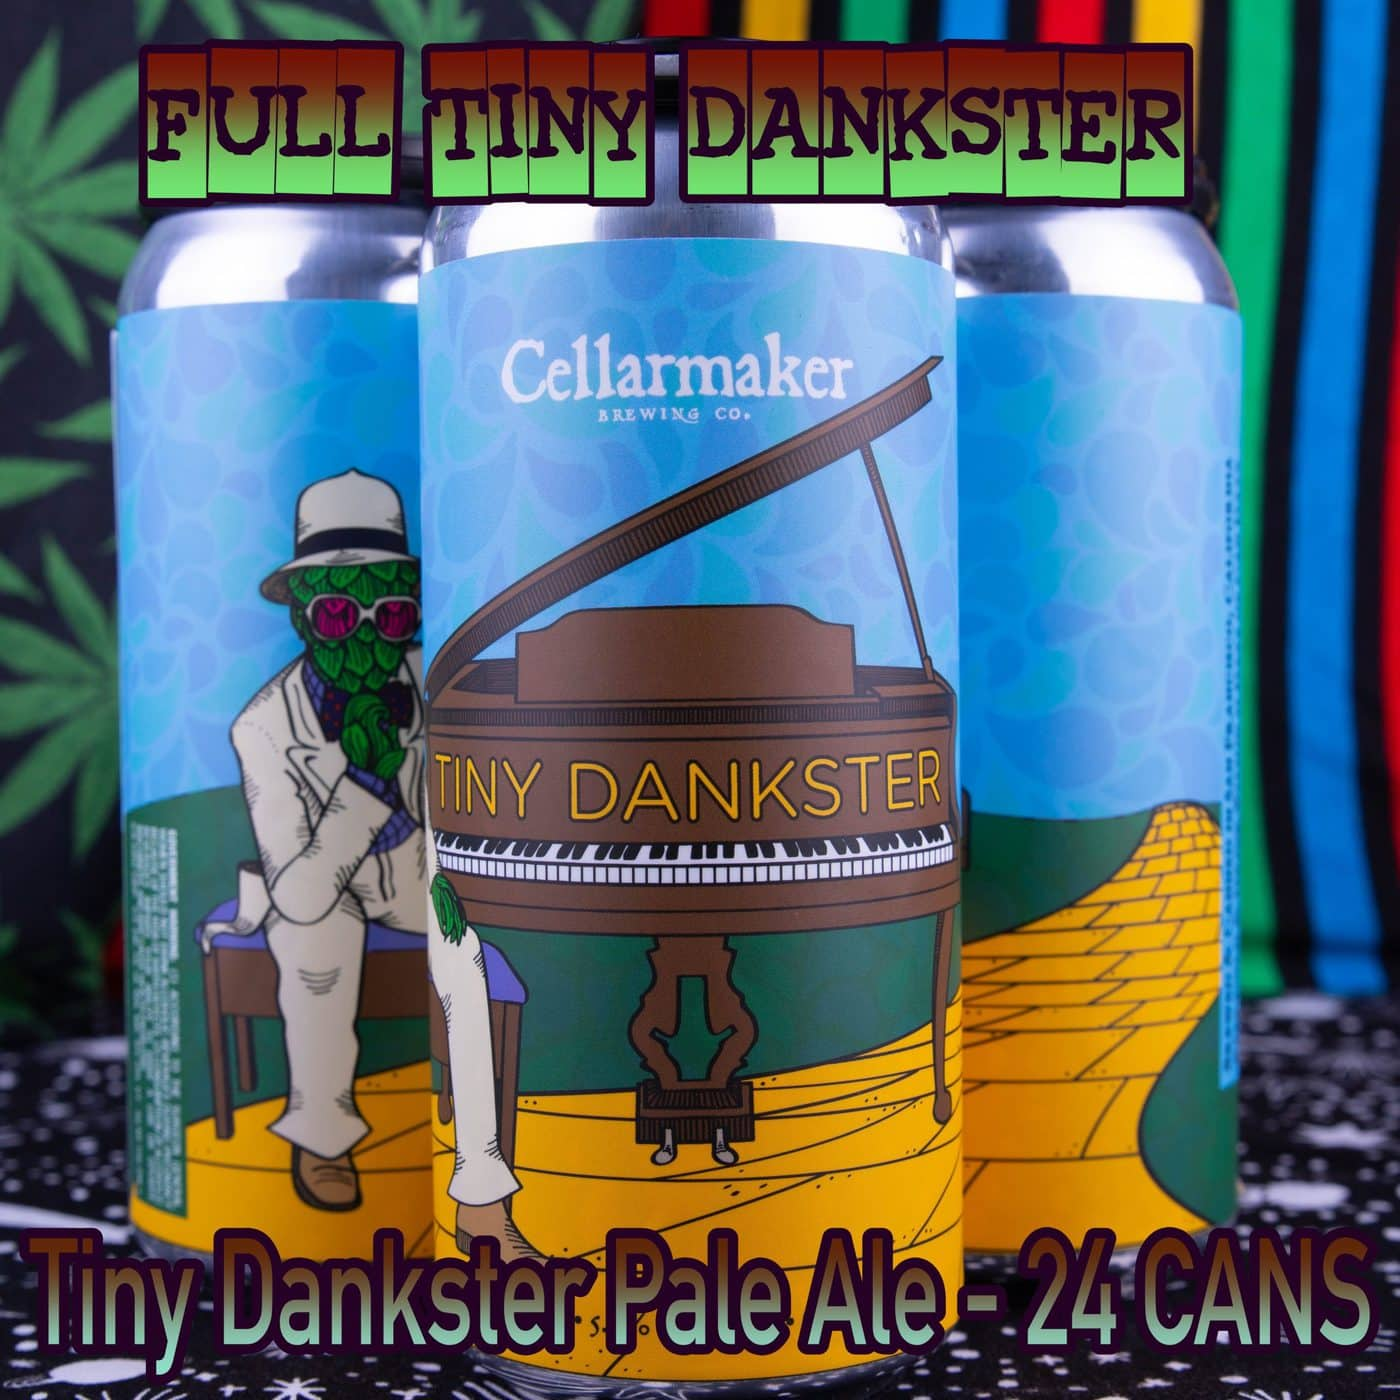 FULL CASE 24 CANS Tiny Dankster Pale Ale – Shipping Out Tuesday 4/13 For Next Day Delivery*